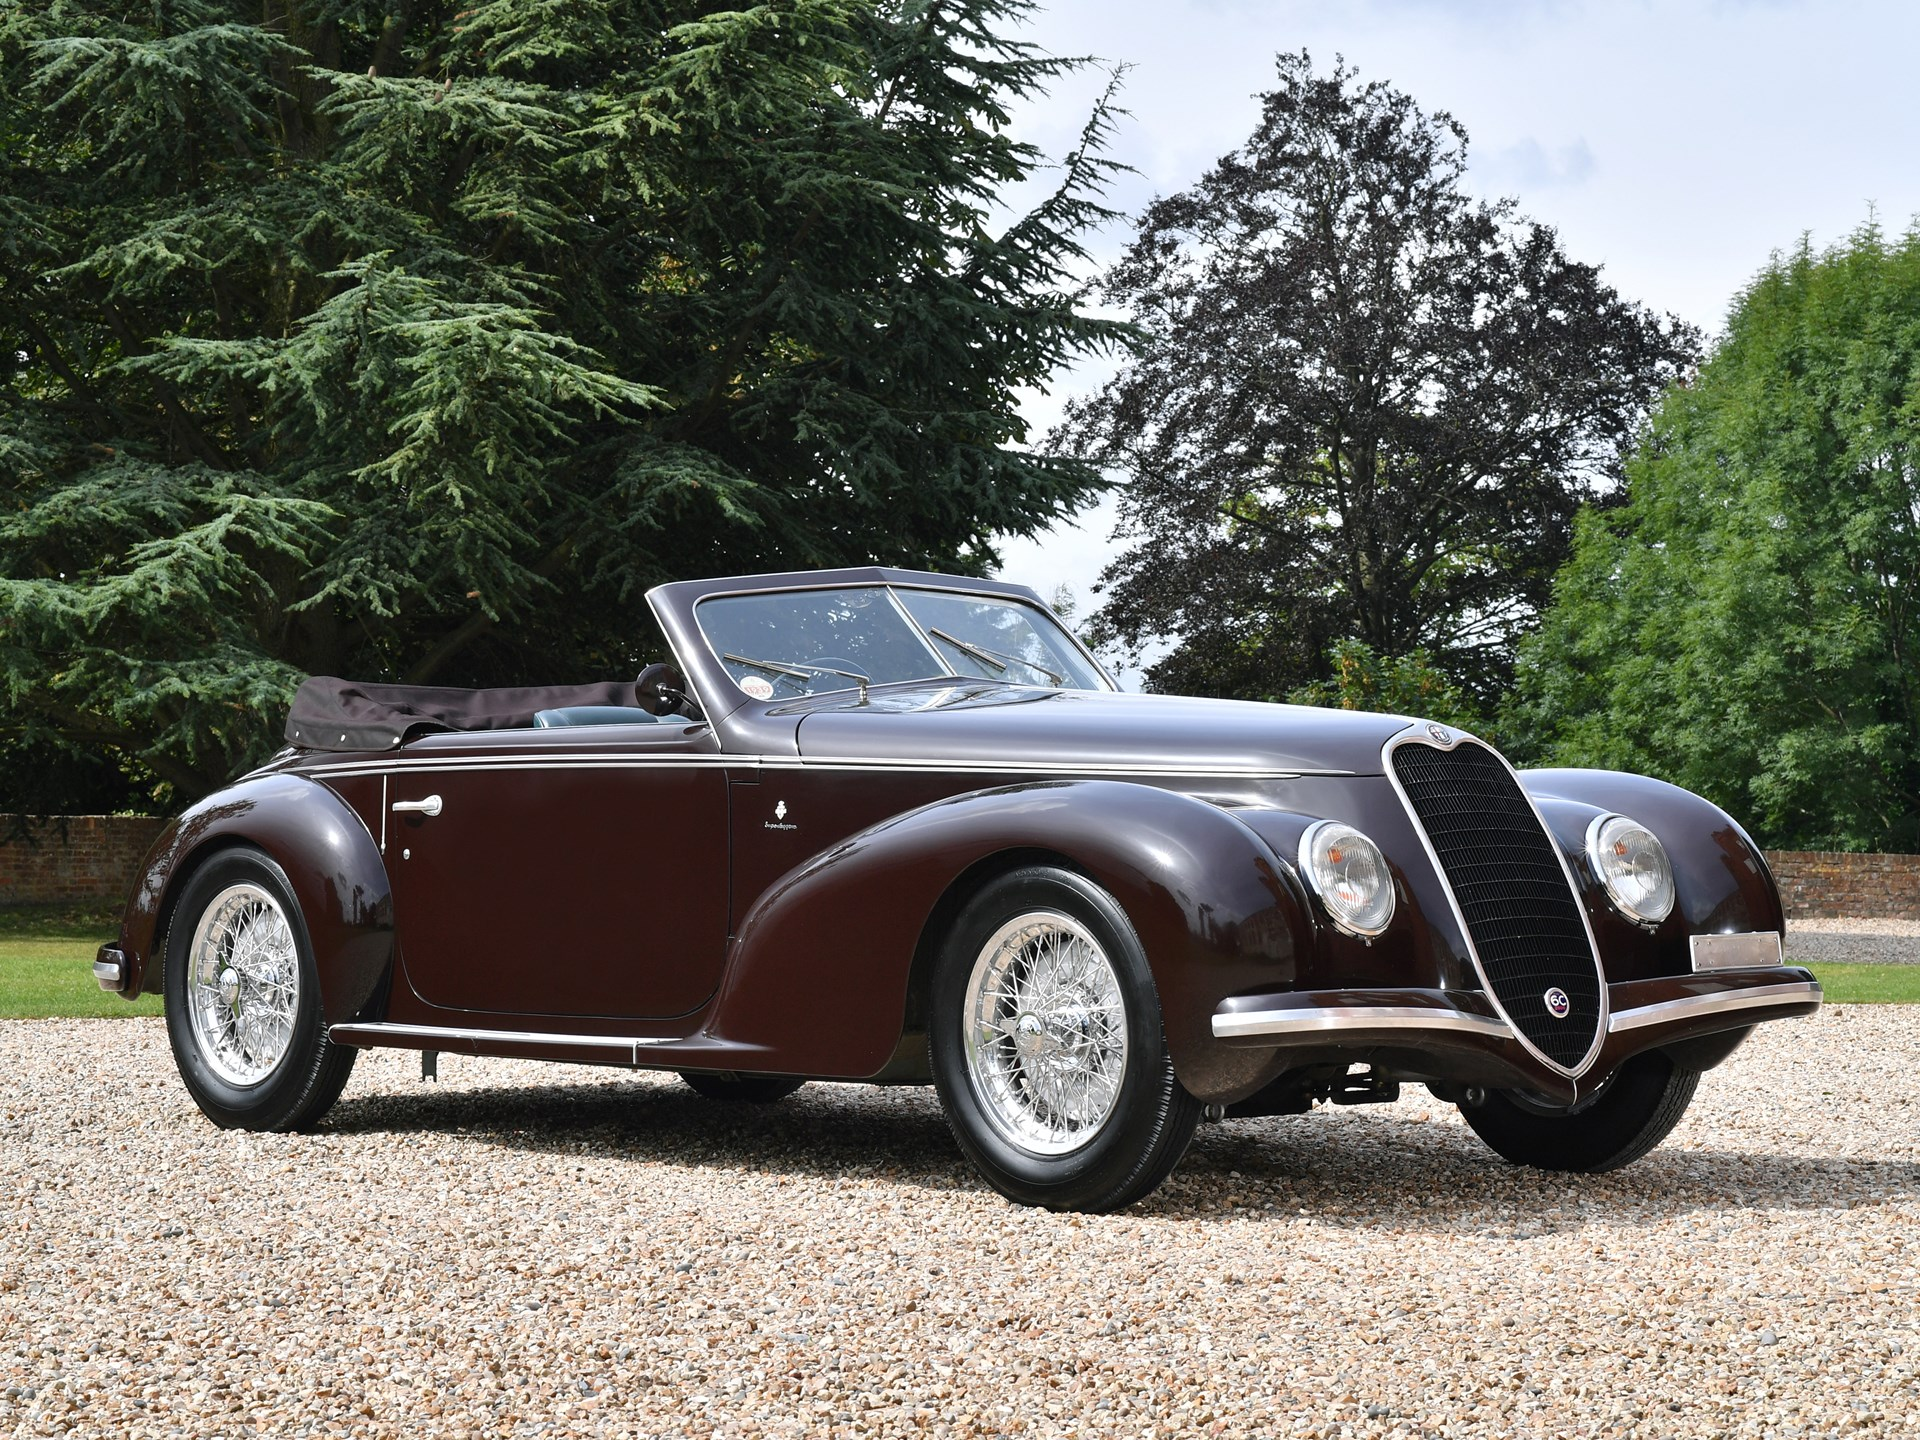 1939 Alfa Romeo 6C 2500 Sport Cabriolet by Touring